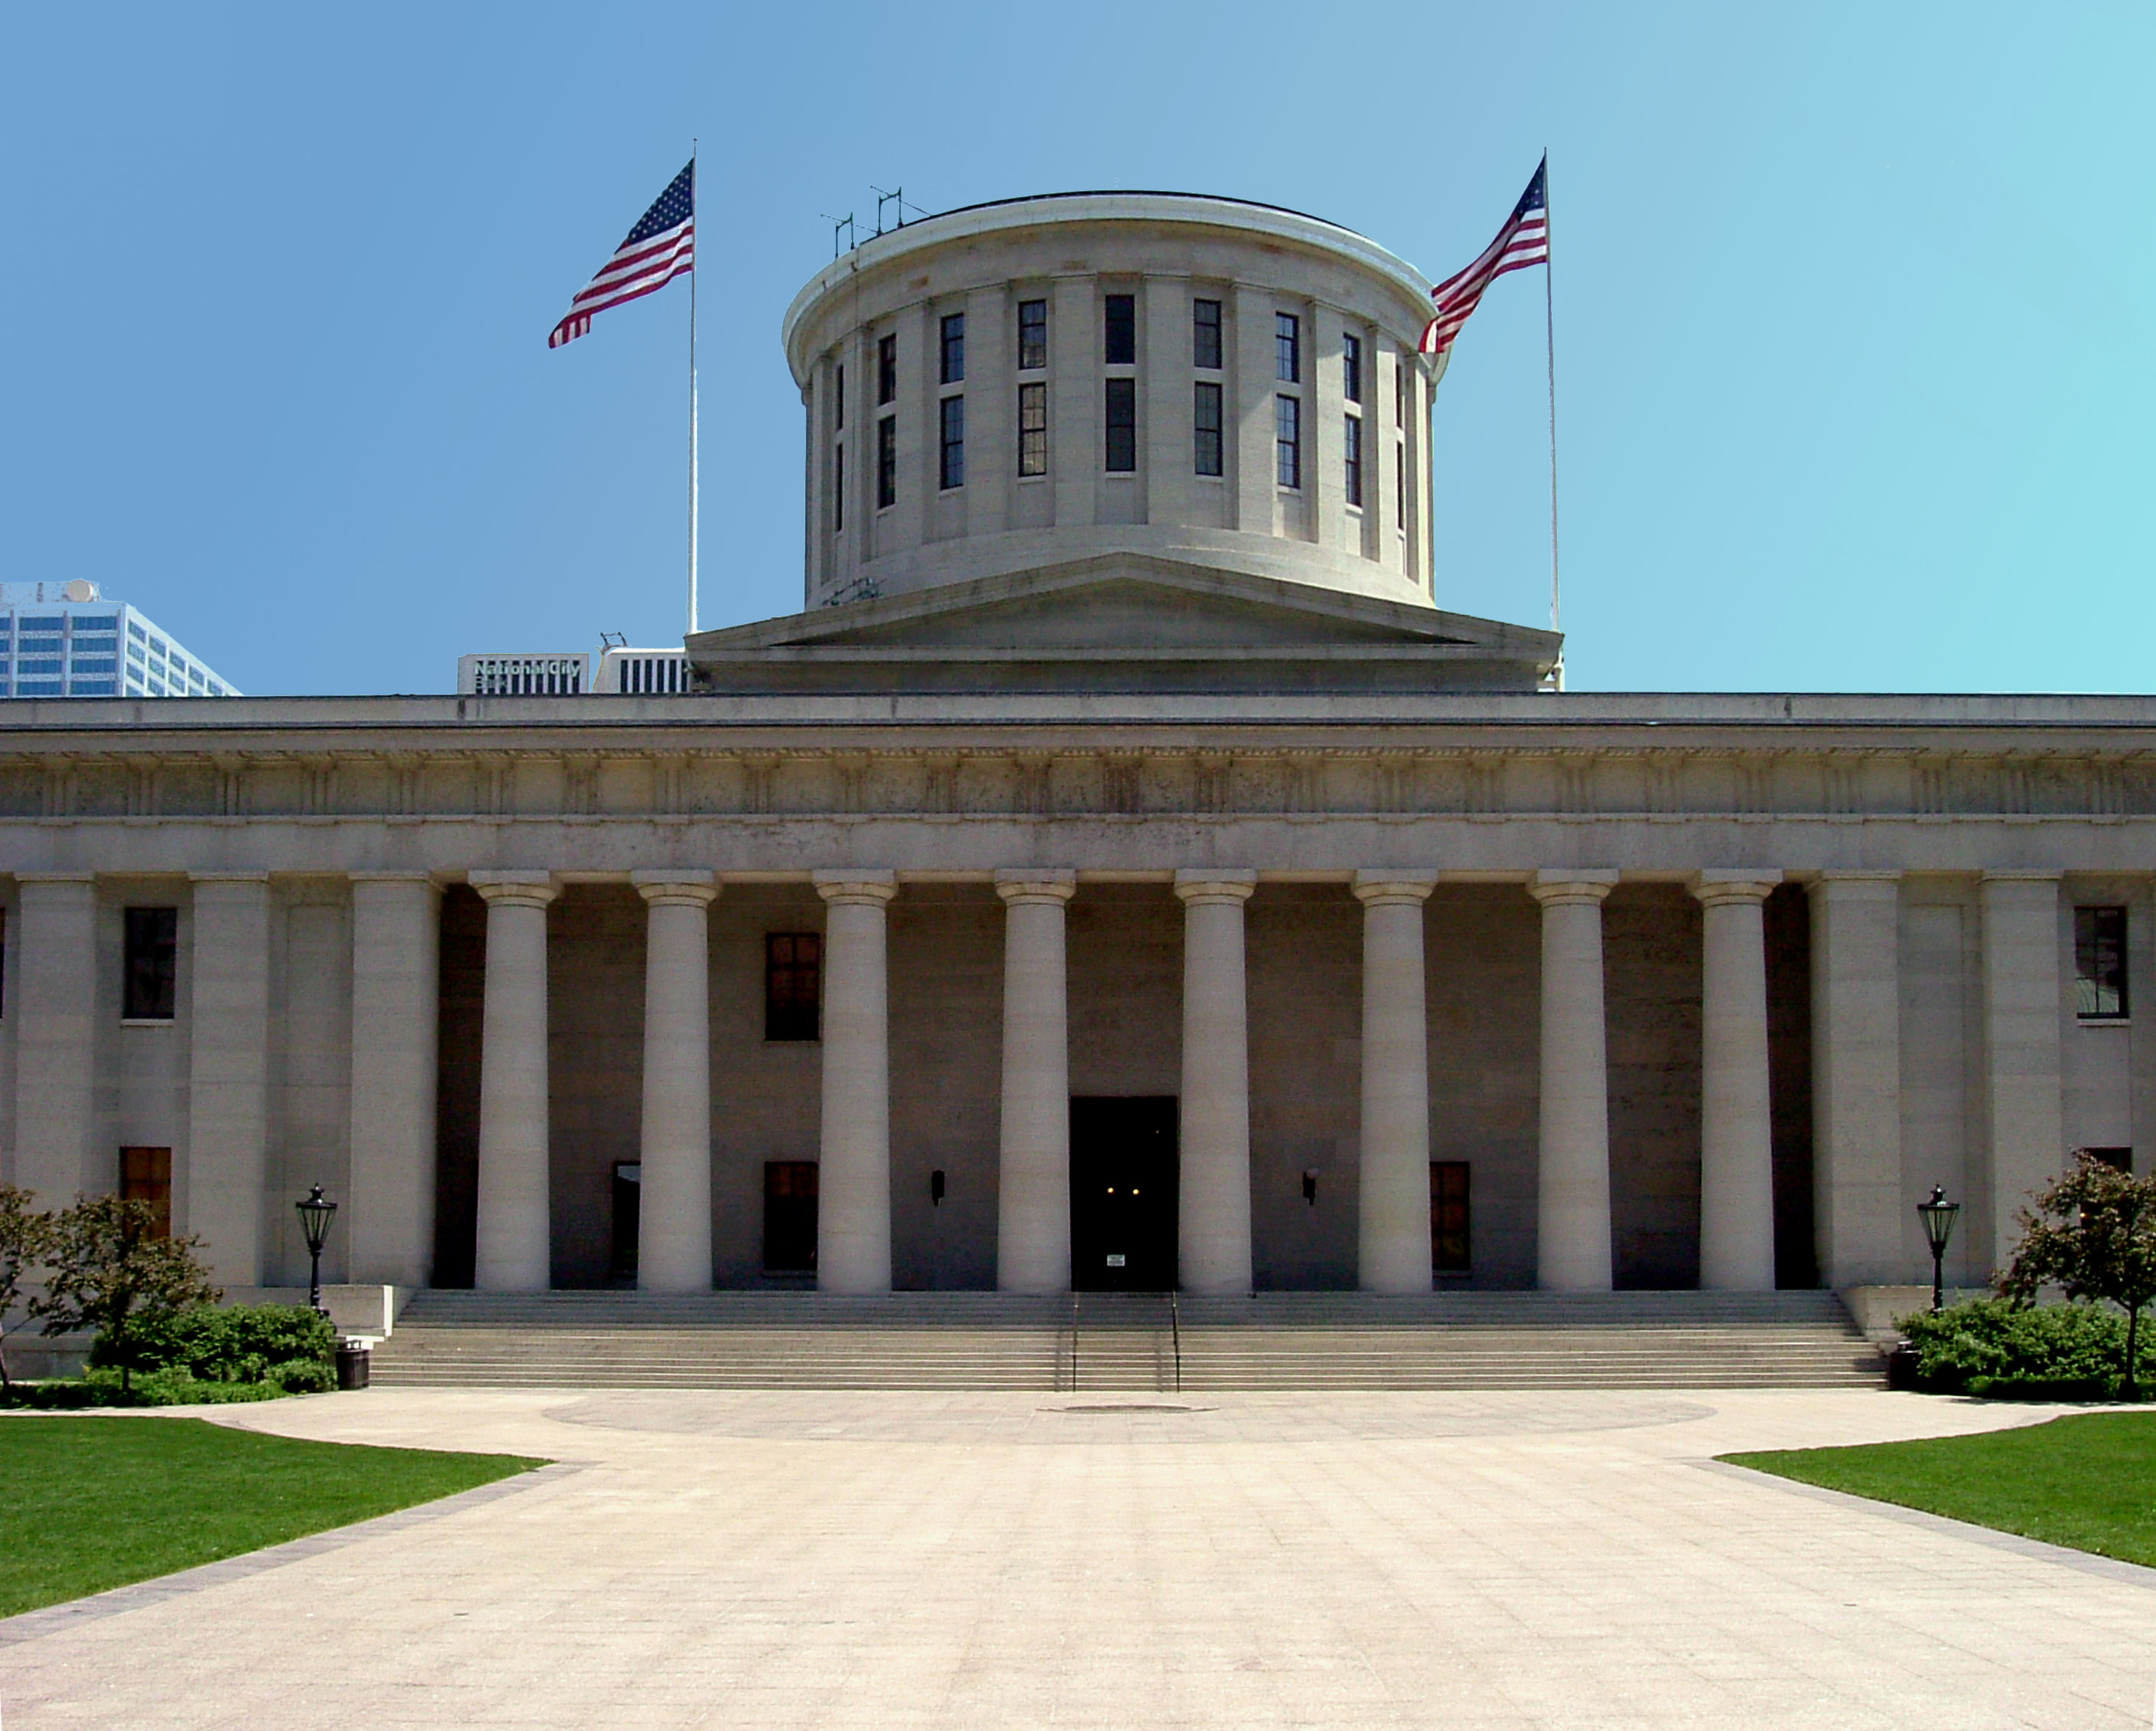 Ohio Statehouse Wikipedia